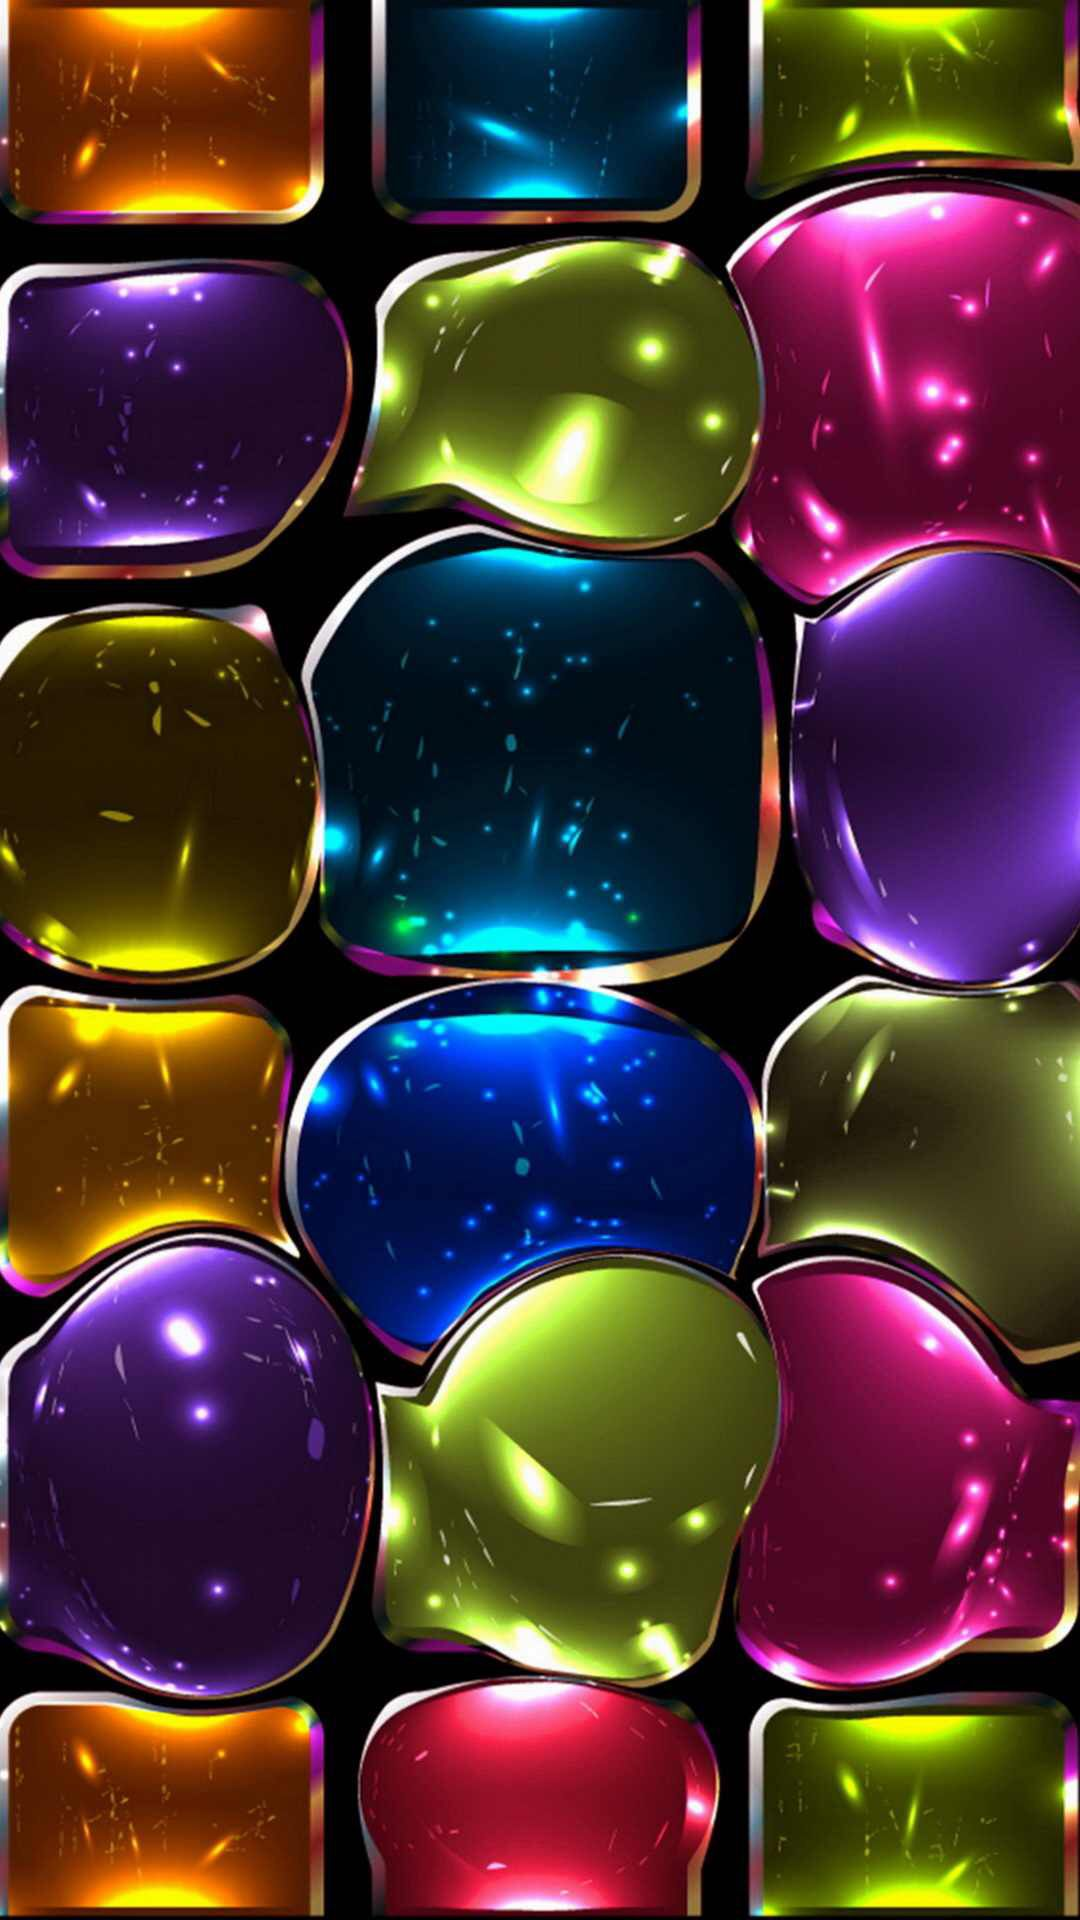 Check Out This Wallpaper For Your Iphone Http Zedge Net W10314320 Src Ios V 2 4 Via Zedge Bubbles Wallpaper Rainbow Wallpaper Colorful Wallpaper